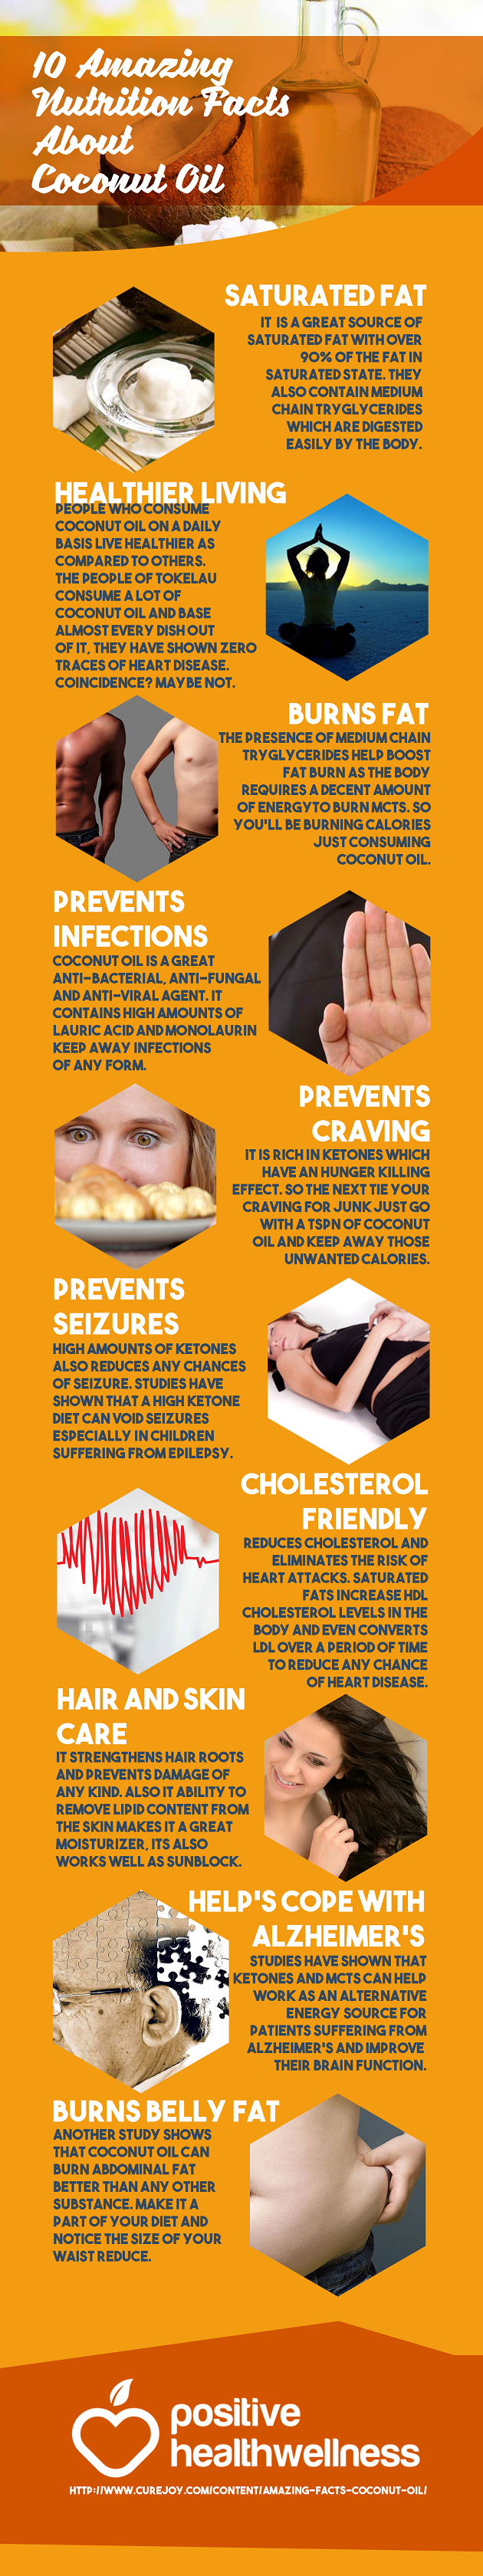 coconut-oil-Nutrition-Facts-Infographic